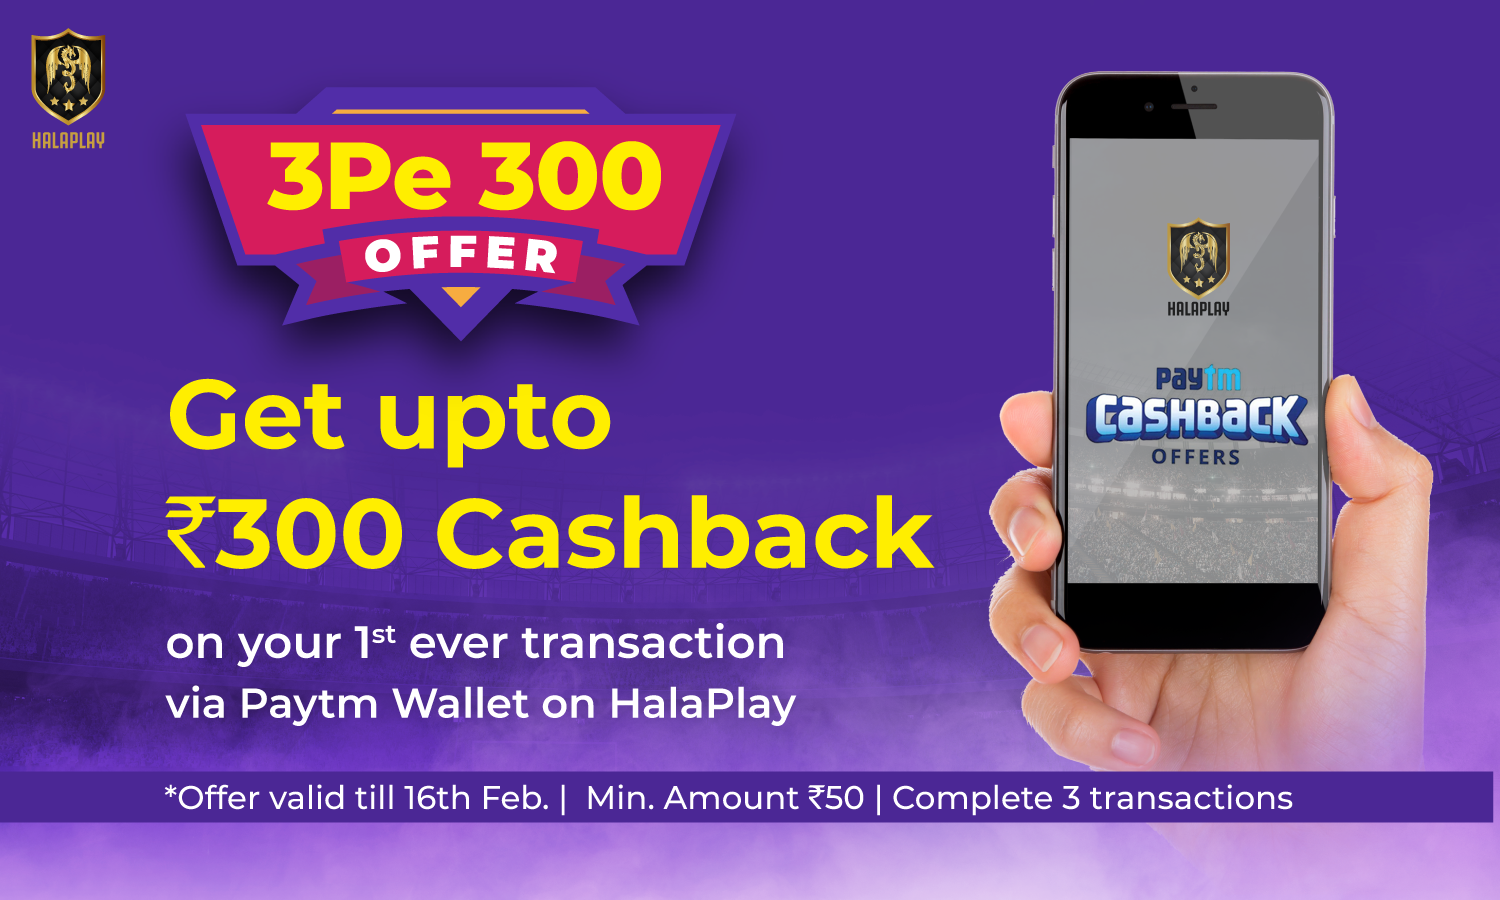 HalaPlay Cashback Offer